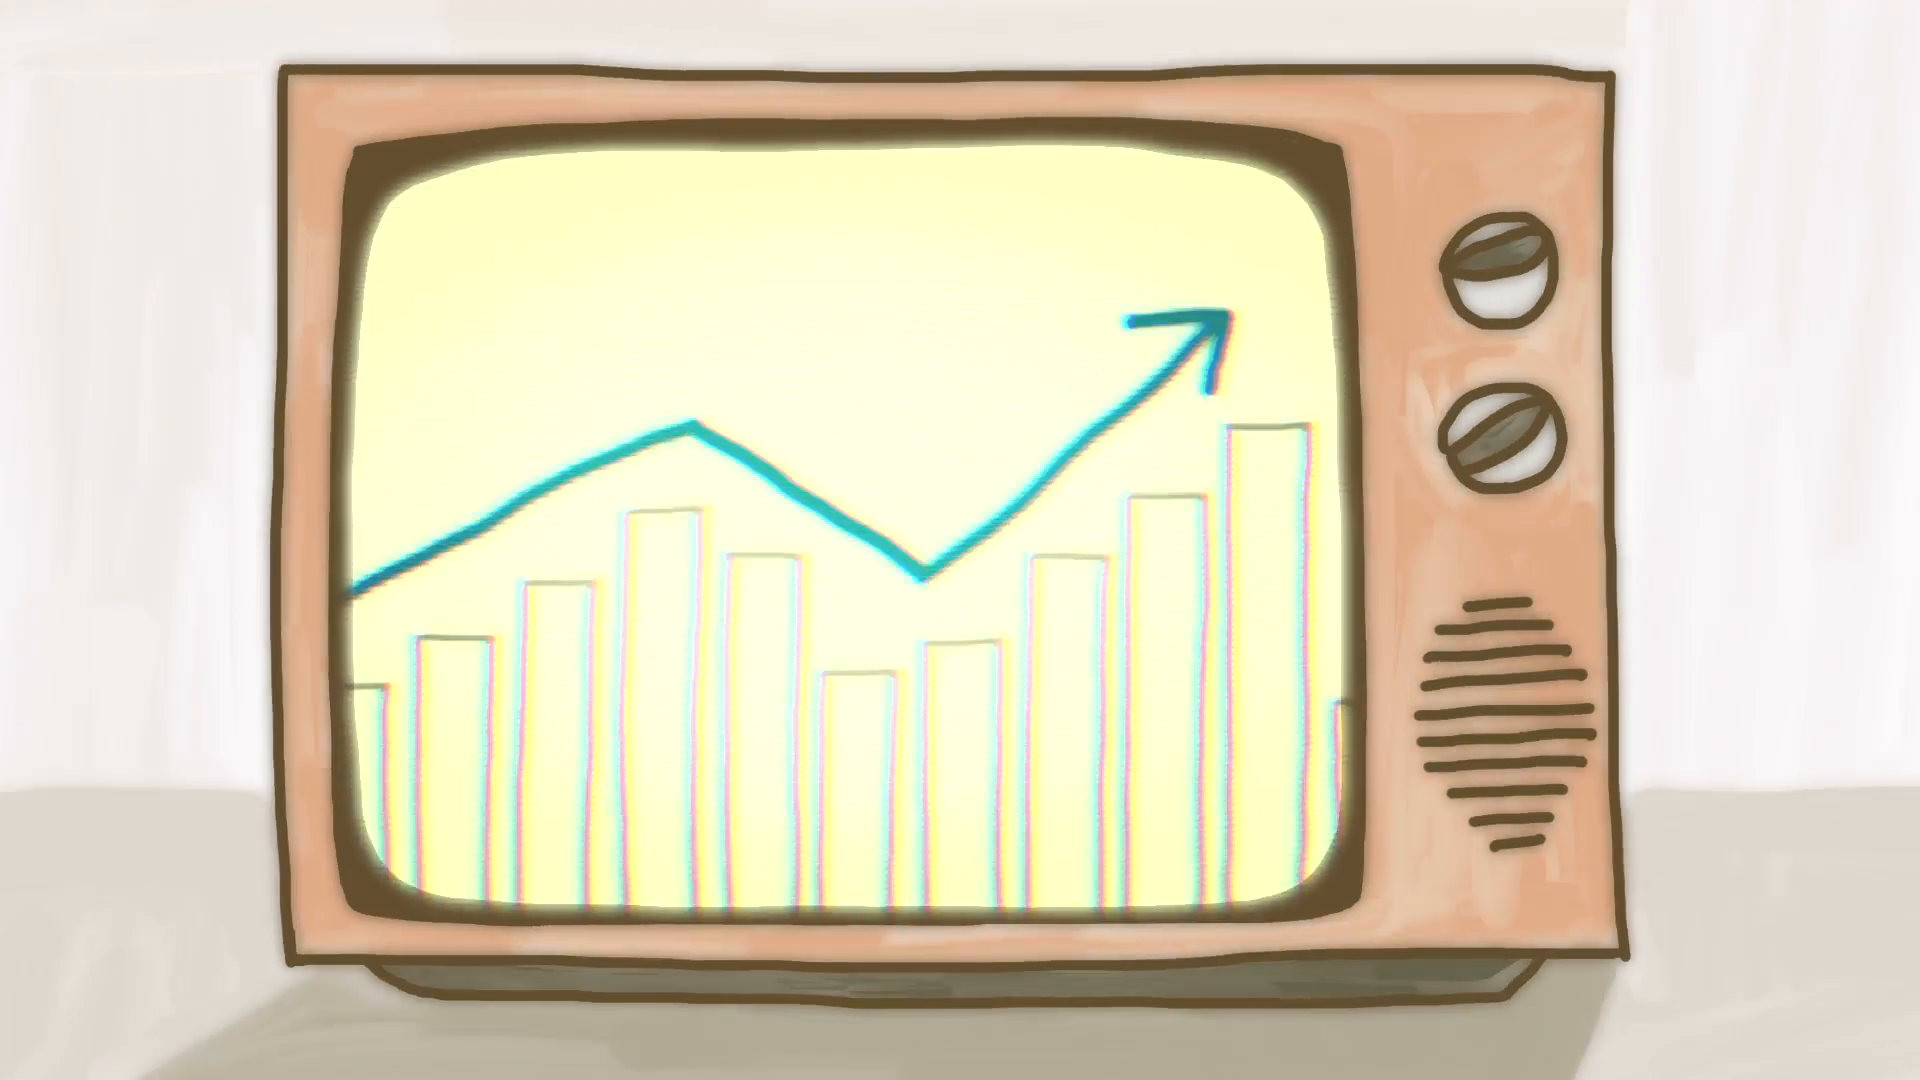 Drawn tv Seamless Growth infographic in TV